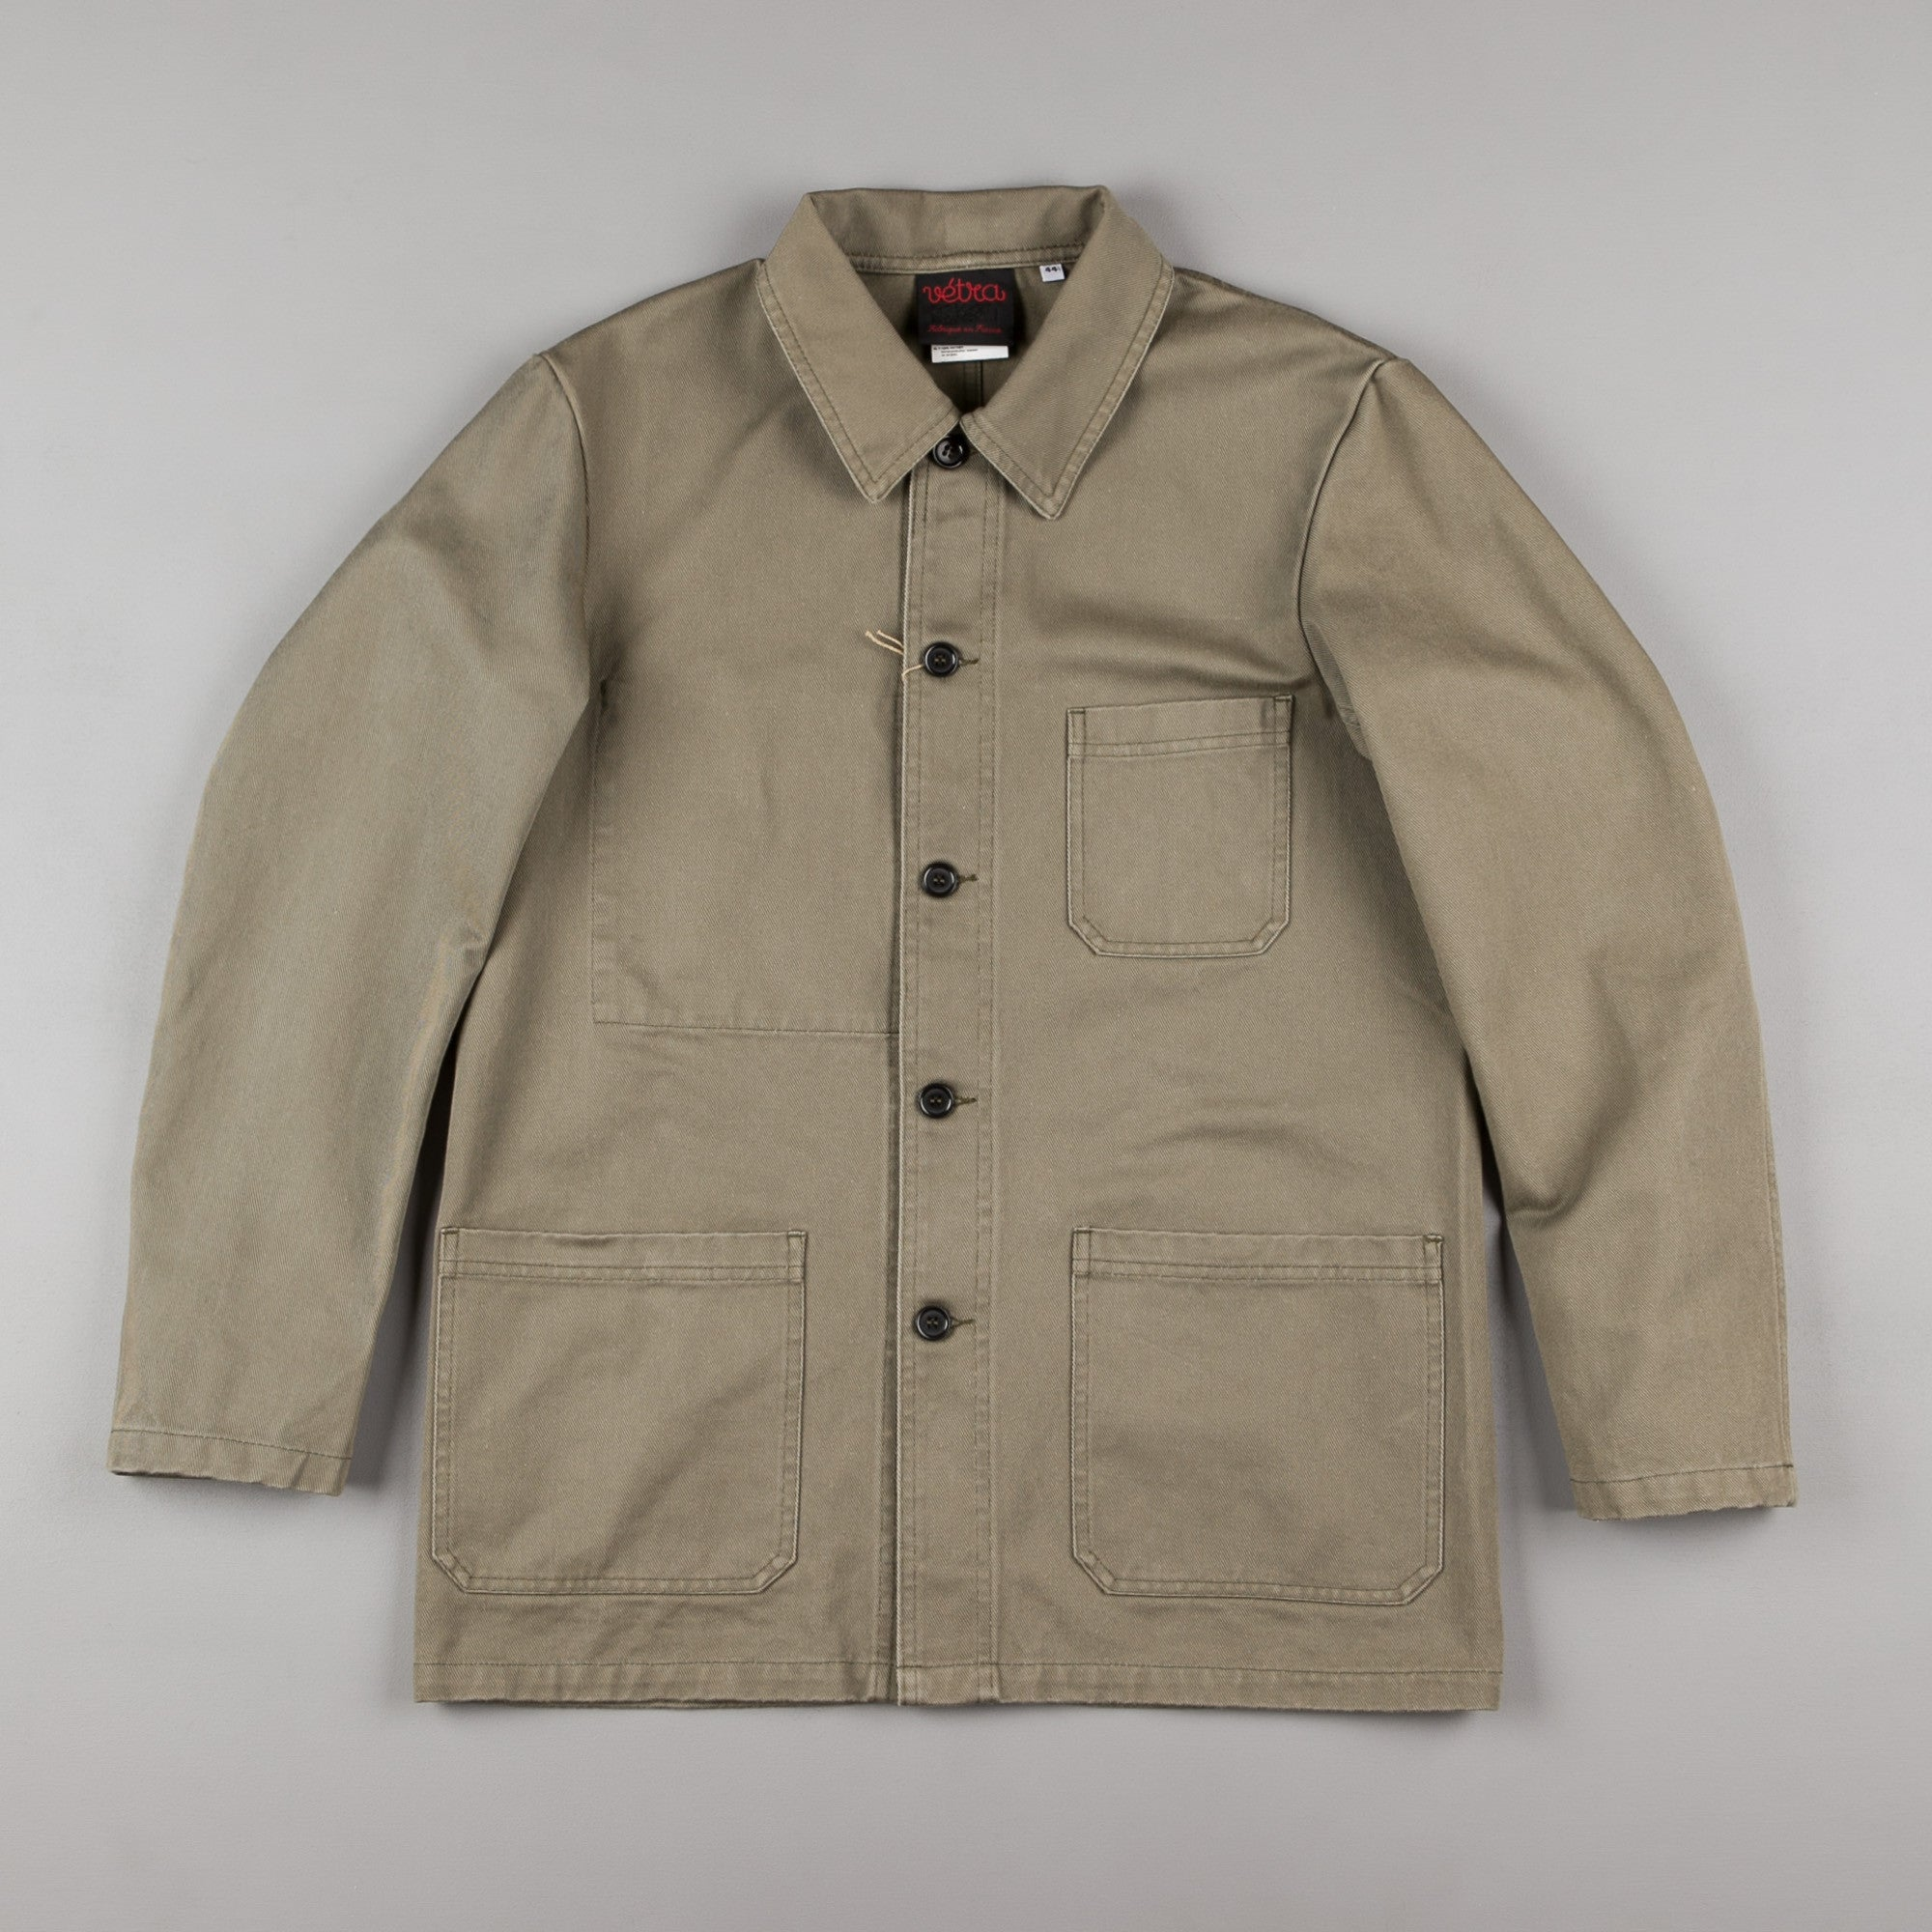 Vetra No.4 Workwear Jacket - Beige